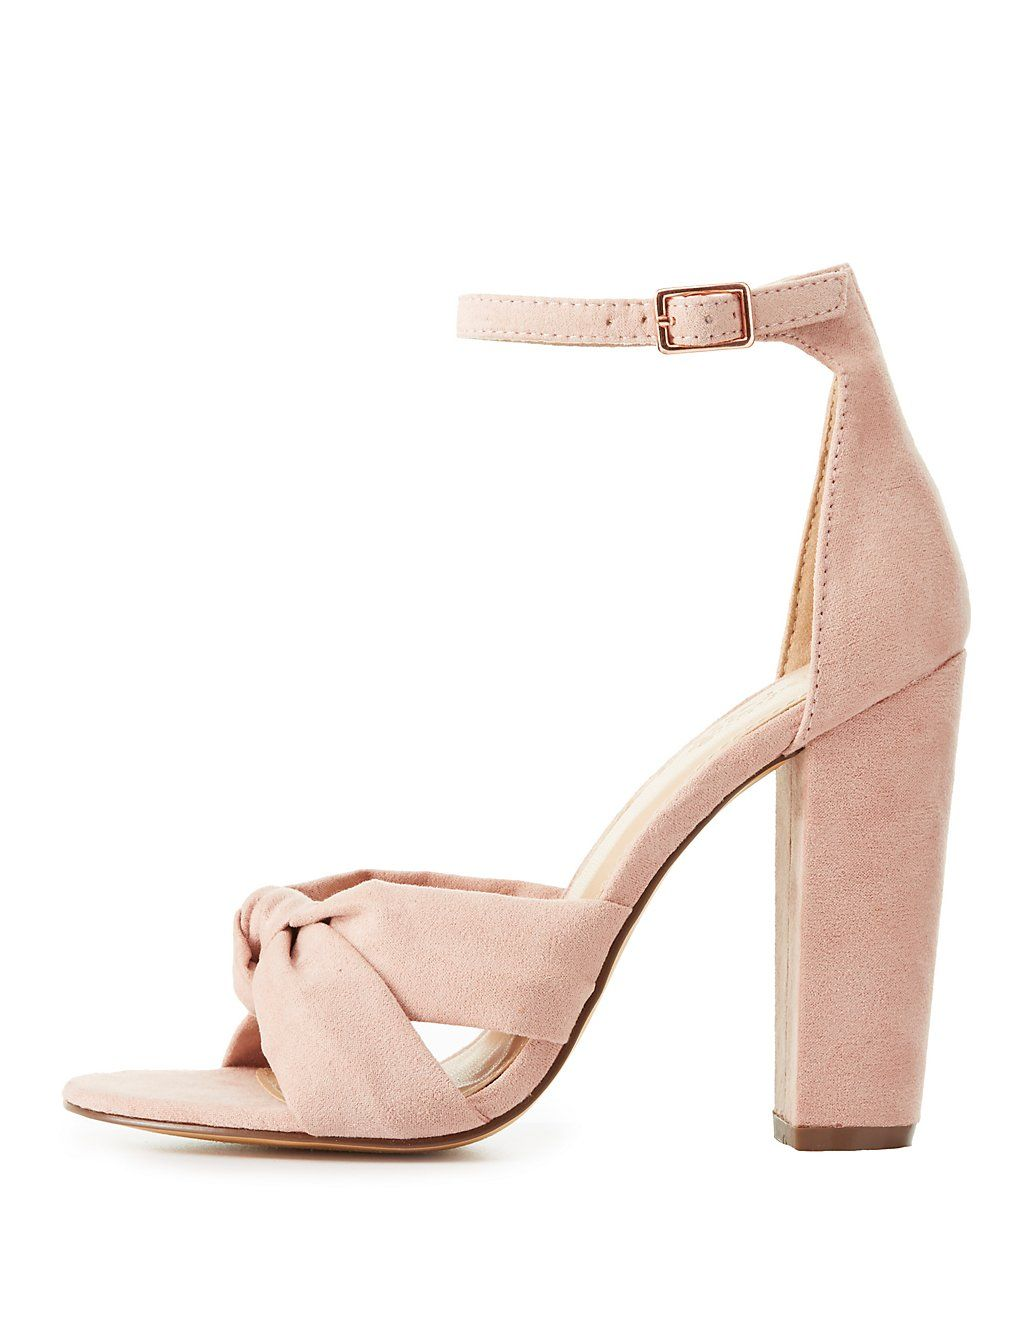 70b7146b8ce0 Knotted Two-Piece Sandals